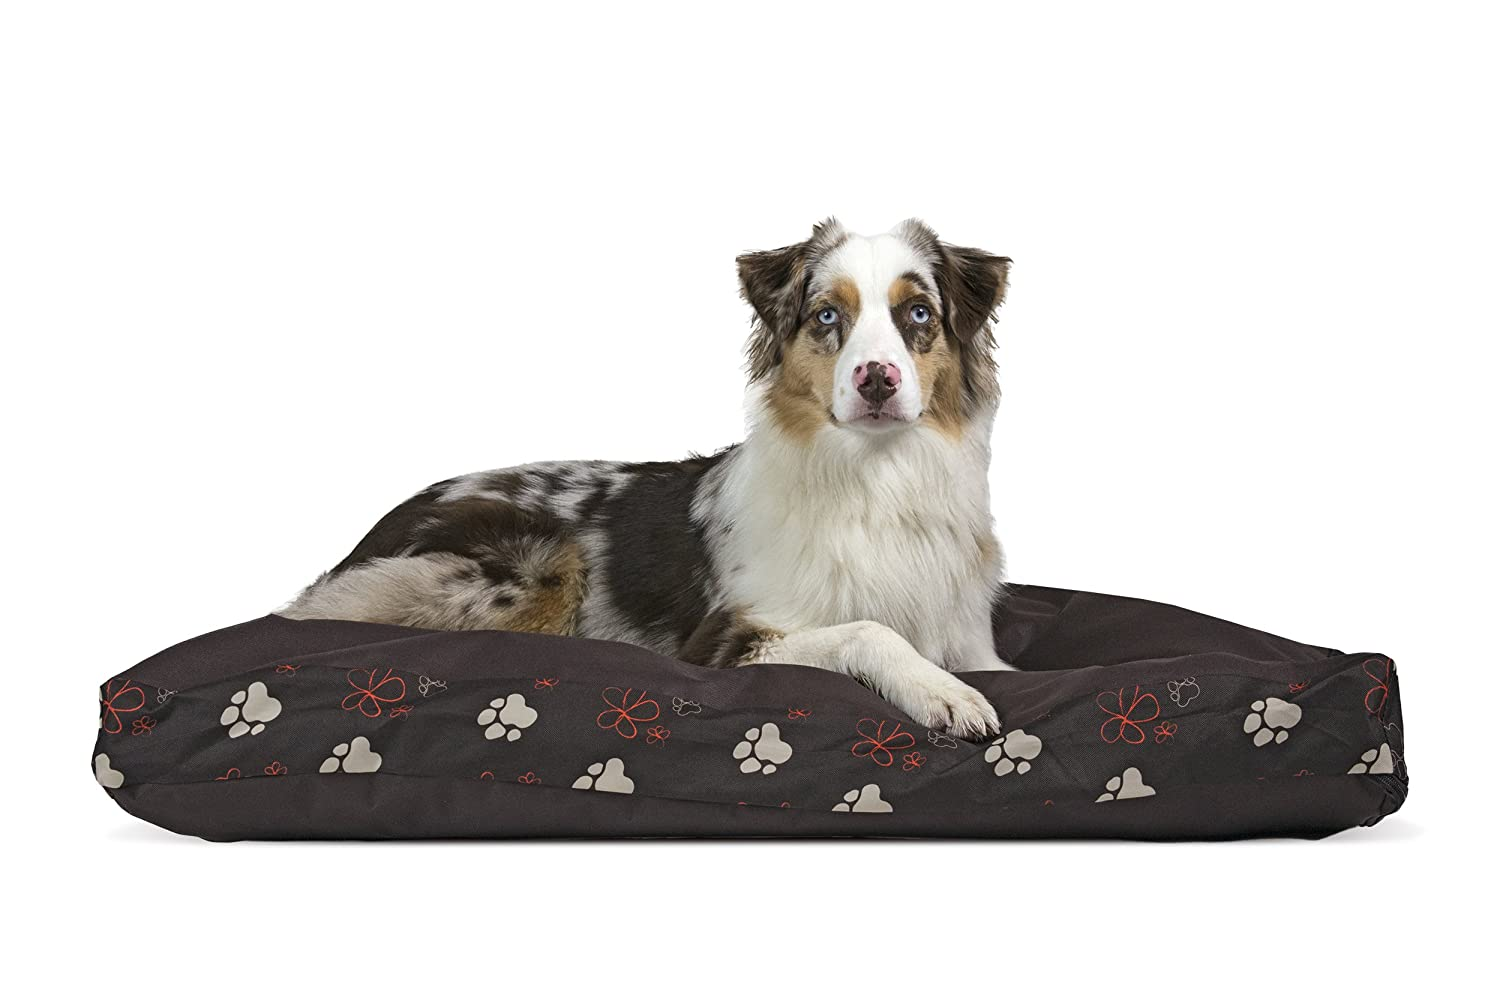 Furhaven Pet Dog Bed   Deluxe Polycanvas Indoor Outdoor Water-Resistant Garden Pillow Pet Bed for Dogs & Cats, Bark Brown, Large